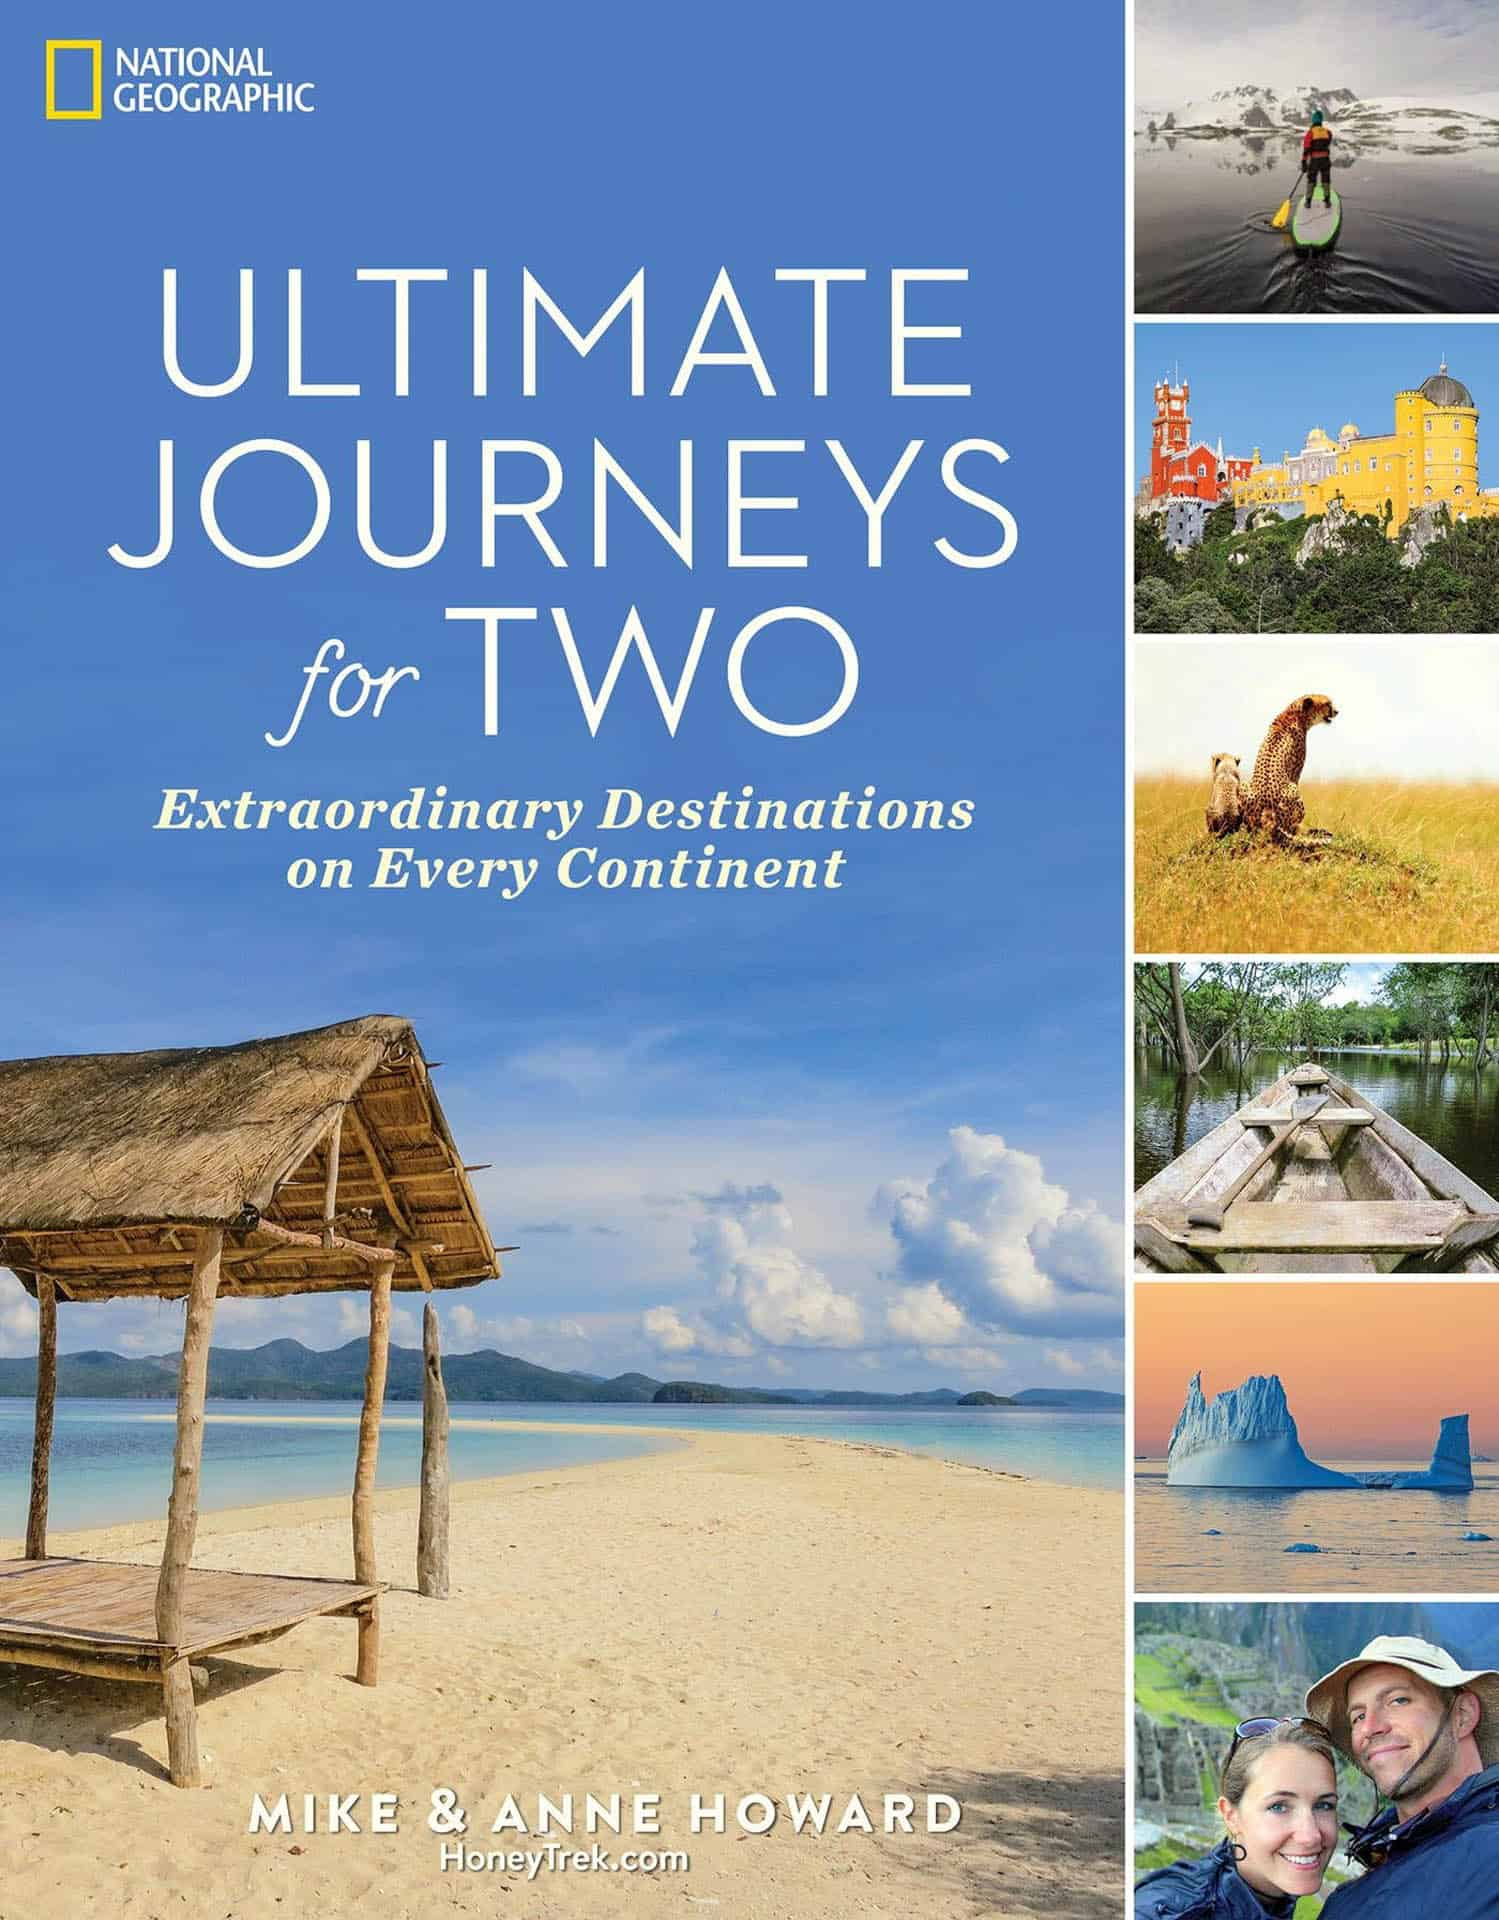 Ultimate Journeys for Two by Mike and Anne Howard